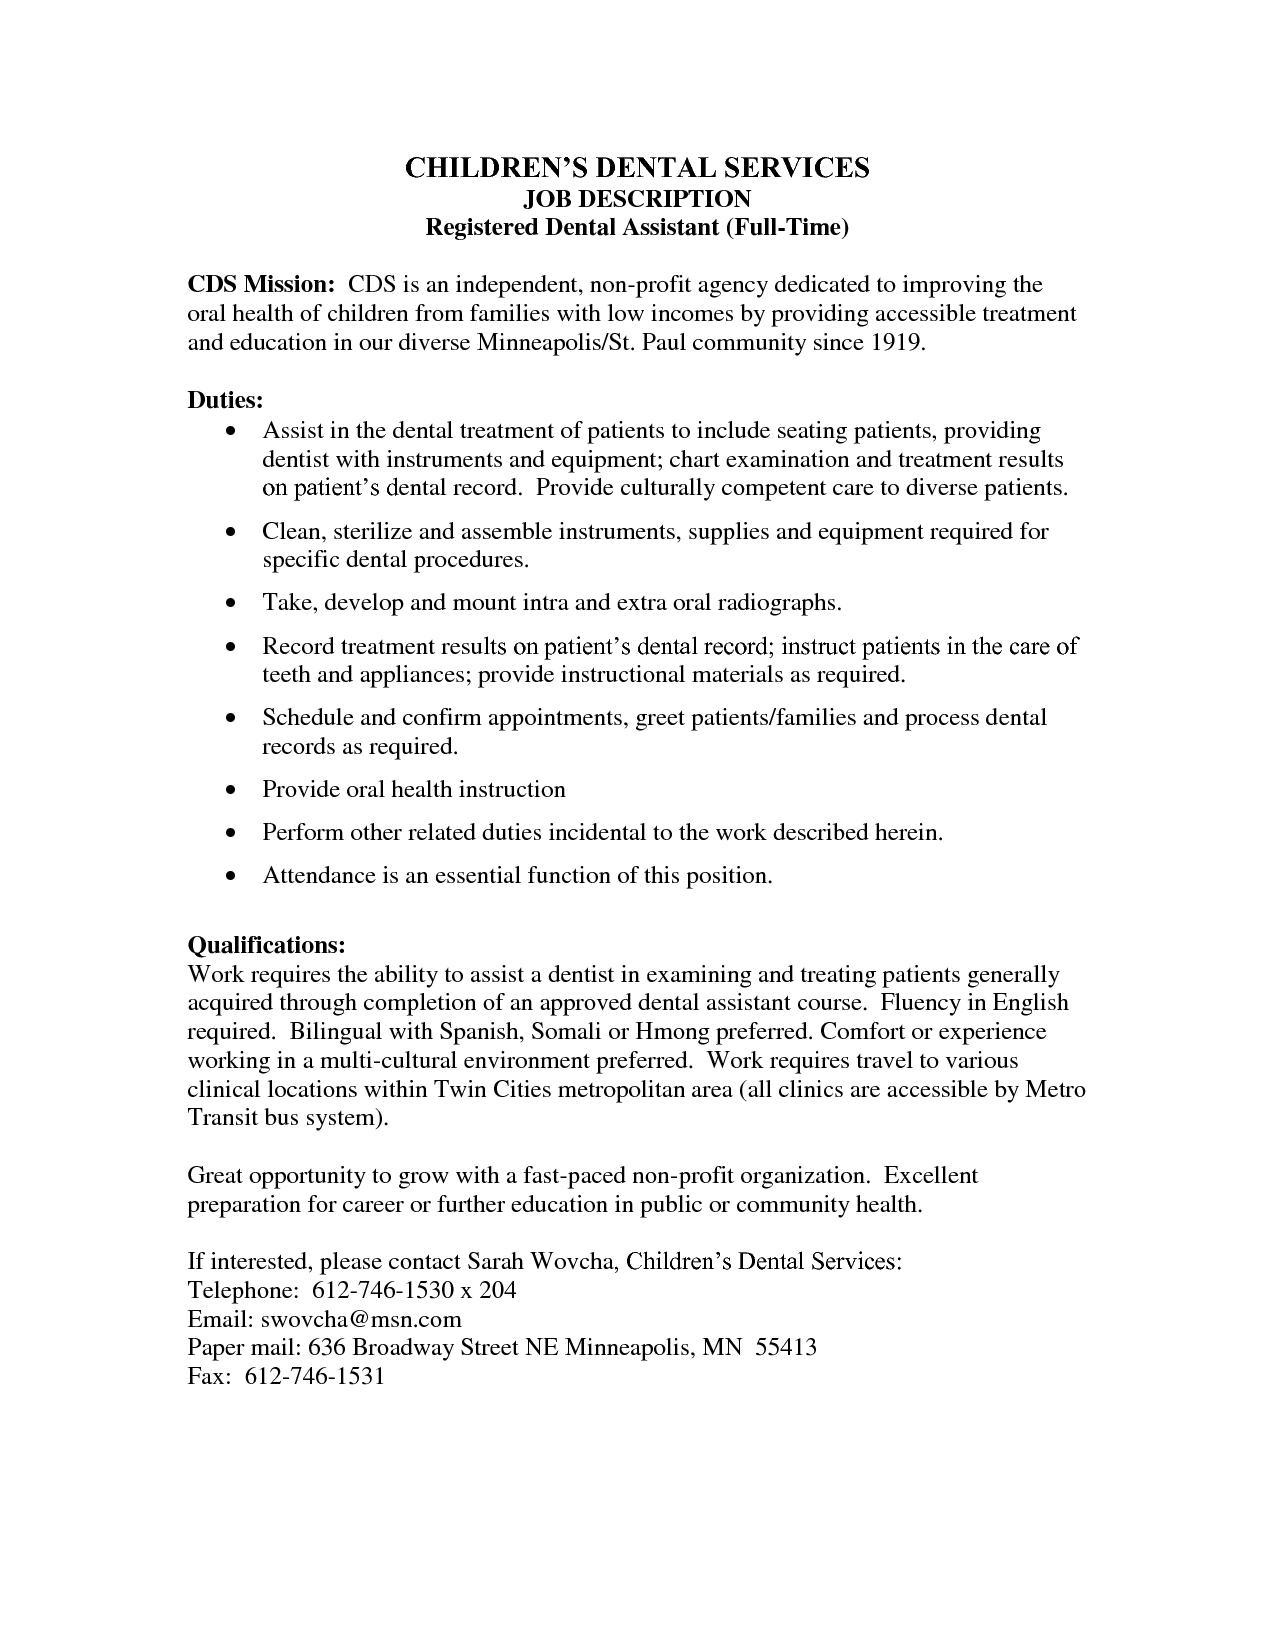 SampleBusinessResume Page 19 of 37 Business Resume – Loan Officer Assistant Job Description